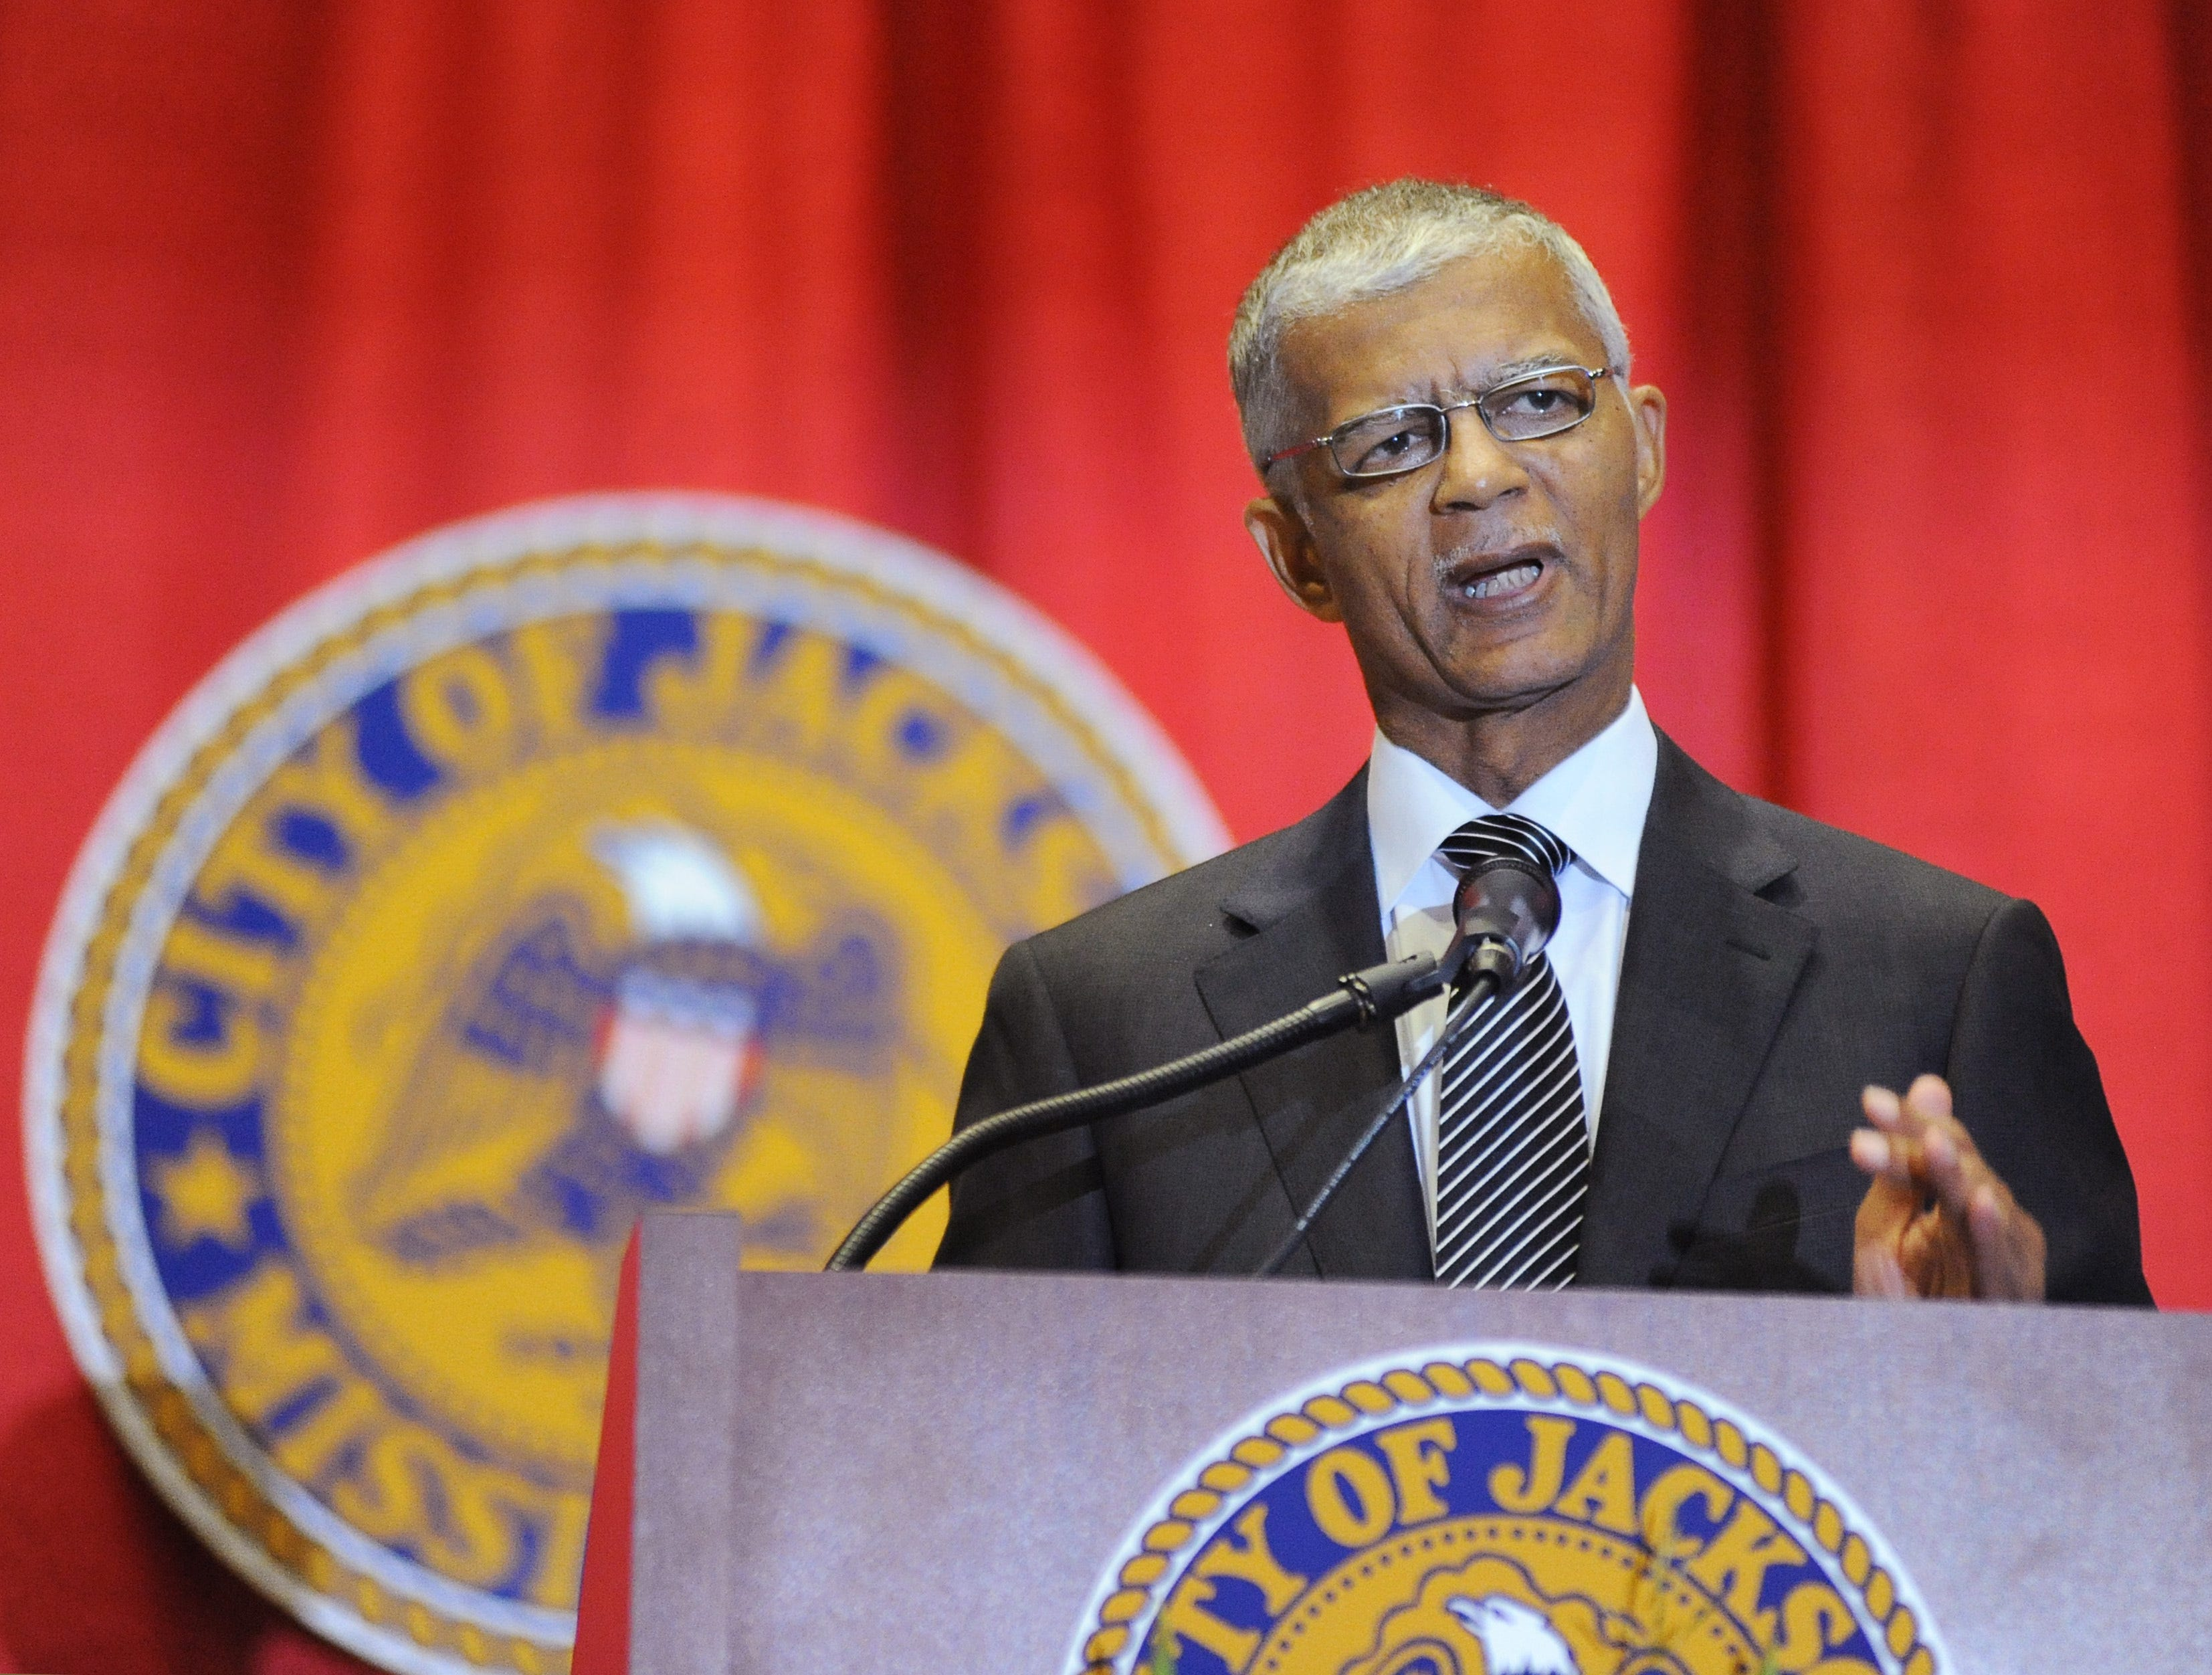 Jackson Mayor Chokwe Lumumba delivers his inaugural address at the Jackson Convention Complex in 2013. Lumumba died the following February, and his heirs have sued St. Dominic Hospital in Jackson over his death.